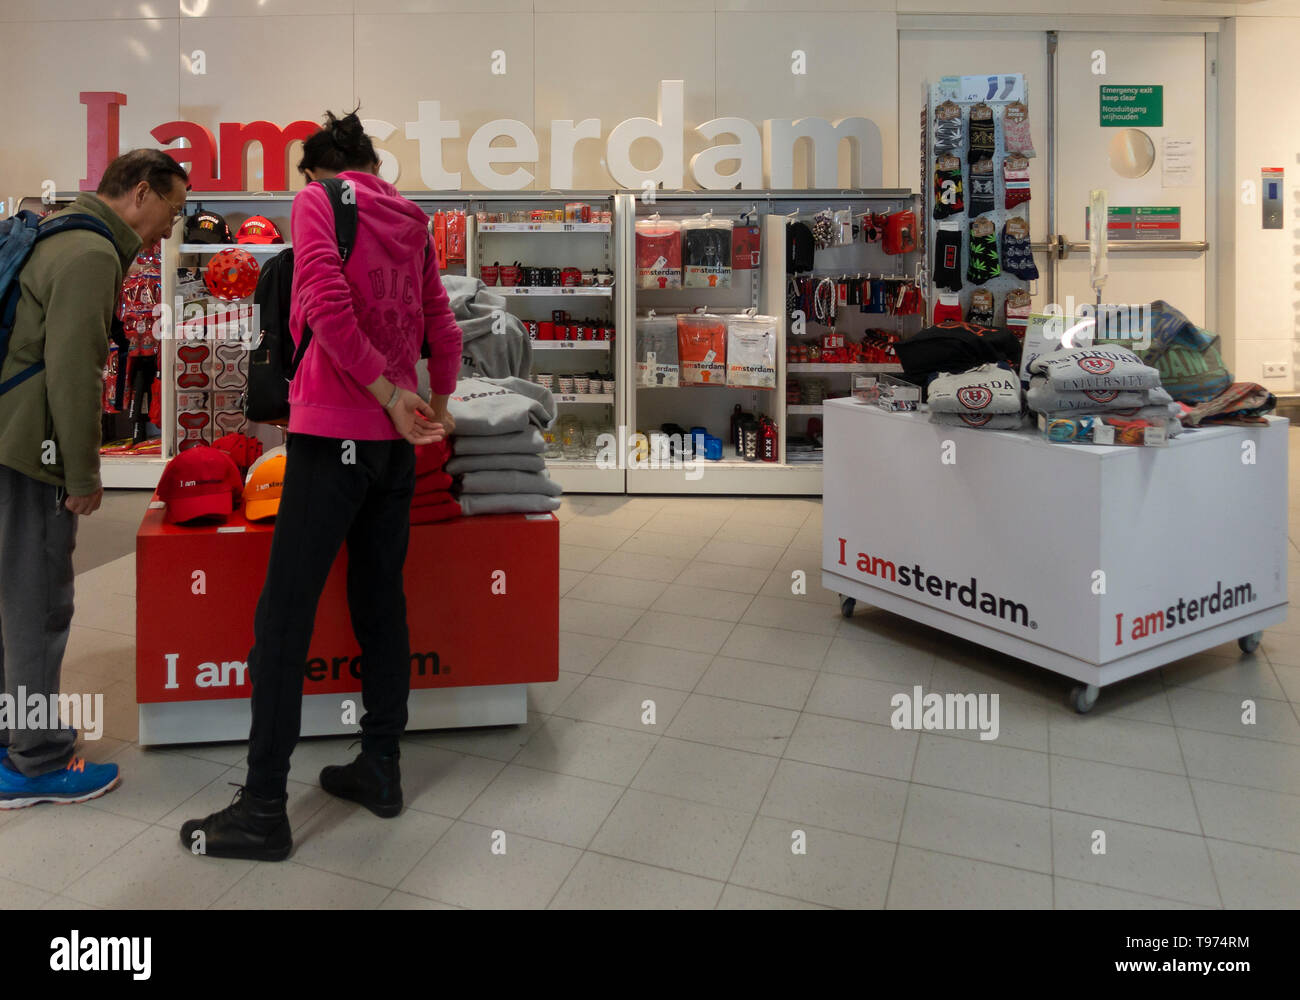 A man and a woman examining the souvenirs being sold at a retail outlet called I amsterdam in Schiphol Airport, Amsterdam, the Netherlands - Stock Image